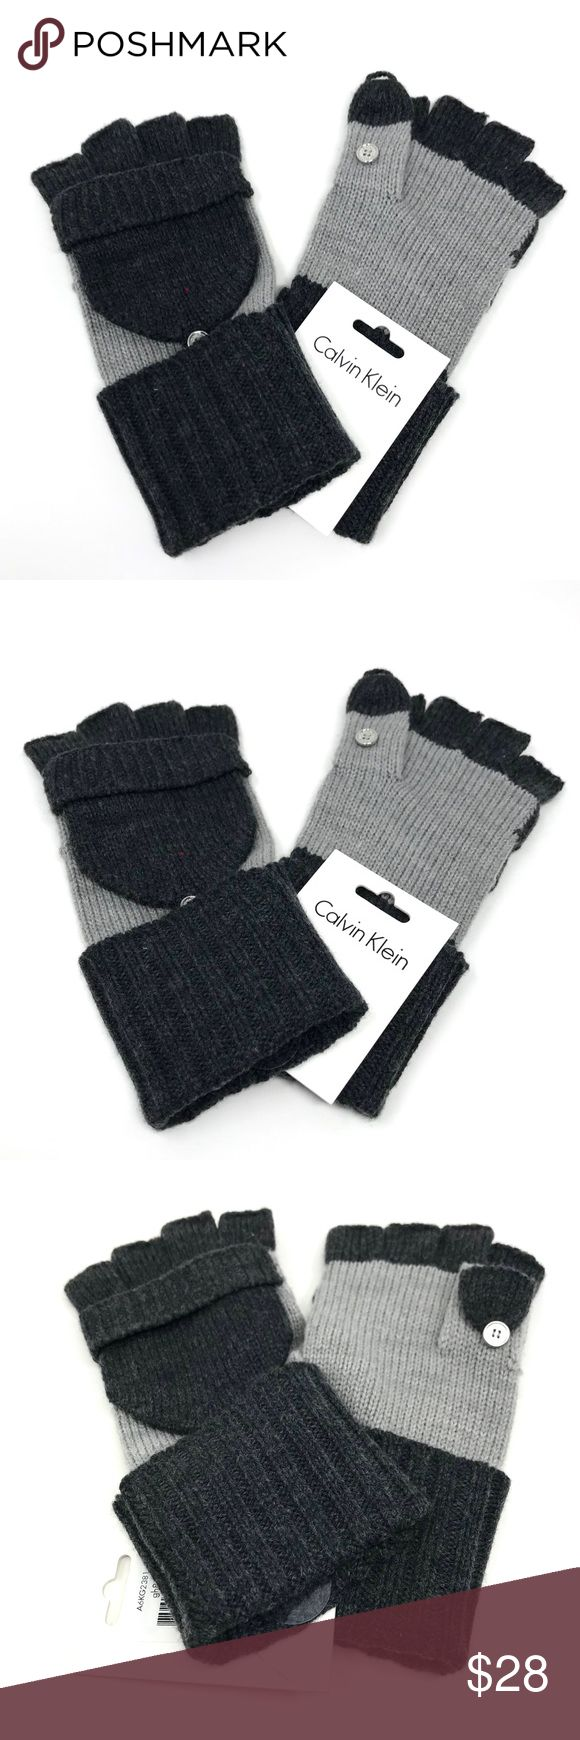 Calvin Klein Gray Metallic Knit Flip-Top Gloves NWT Calvin Klein Womens Gray Metallic Knit Flip-Top Gloves MSRP $38  Details:  Calvin Klein  100% authentic  Condition: brand new with tags  Retail price: $54 plus tax  Beanie  Color: gray  Material: acrylic  Size: one size   Metallic throughout  Style number: A6KG2381 UPC: 889609081609 Calvin Klein Accessories Gloves & Mittens